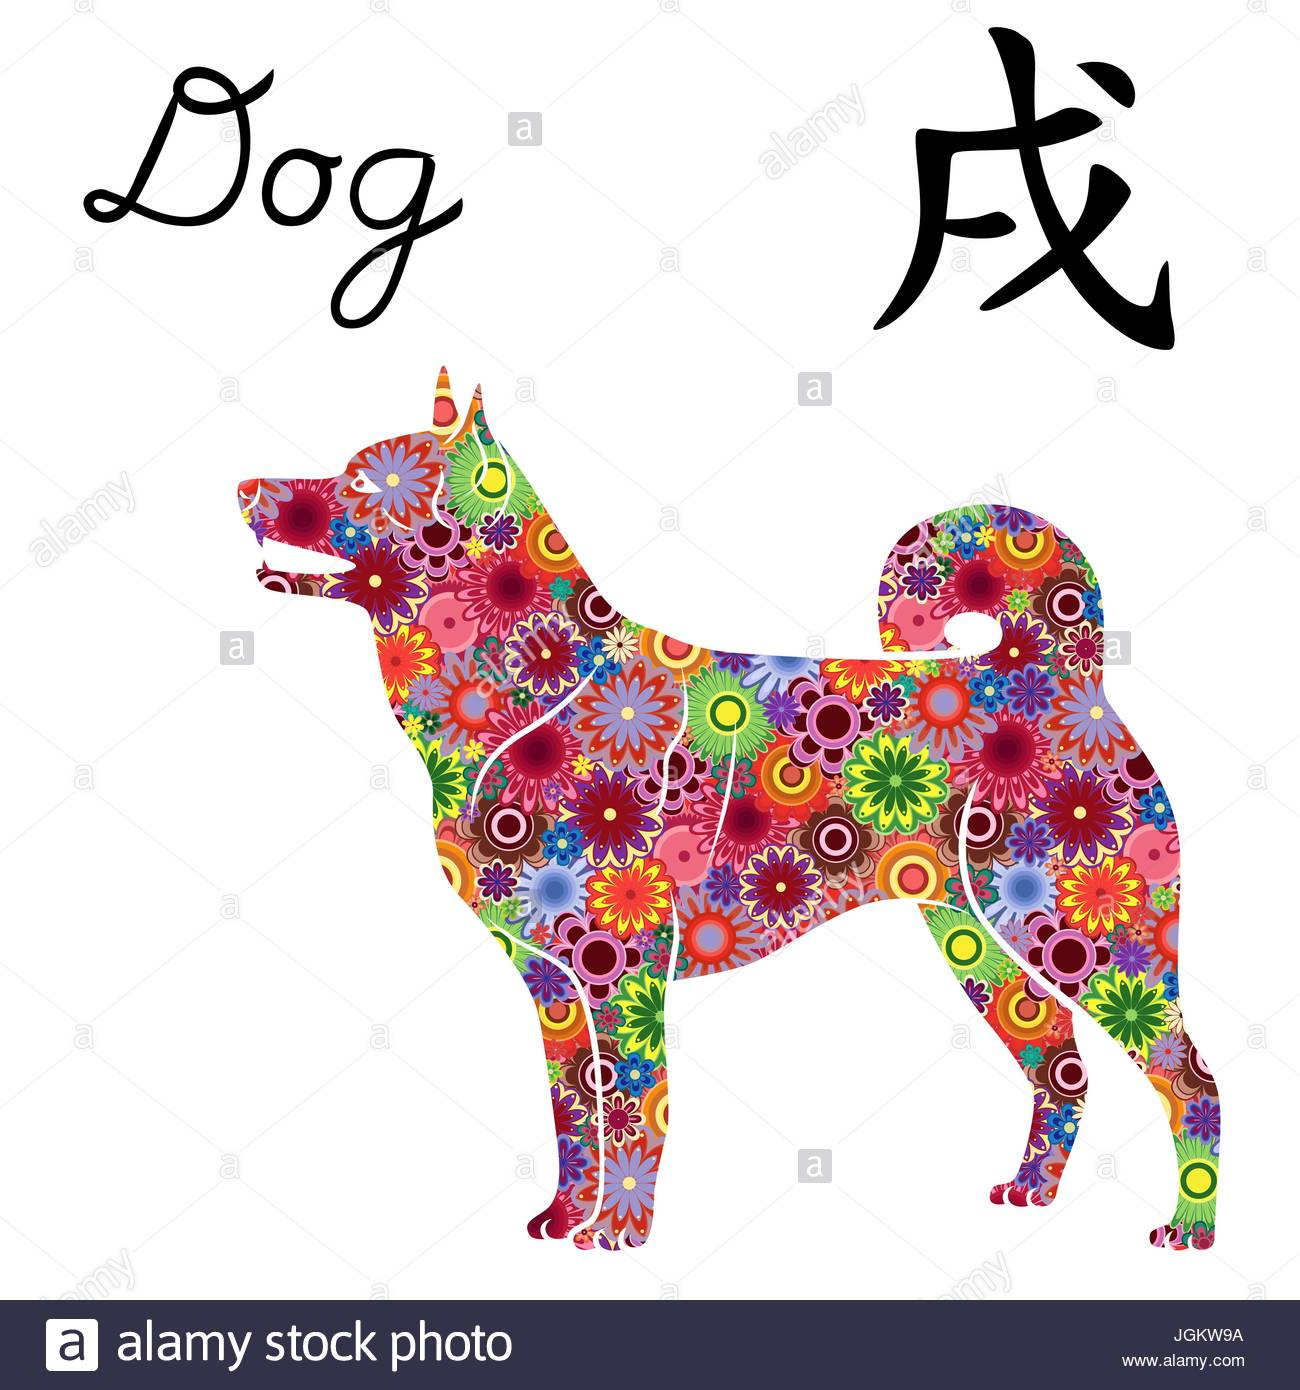 Chinese Zodiac Sign Dog, Symbol Of New Year On The Eastern